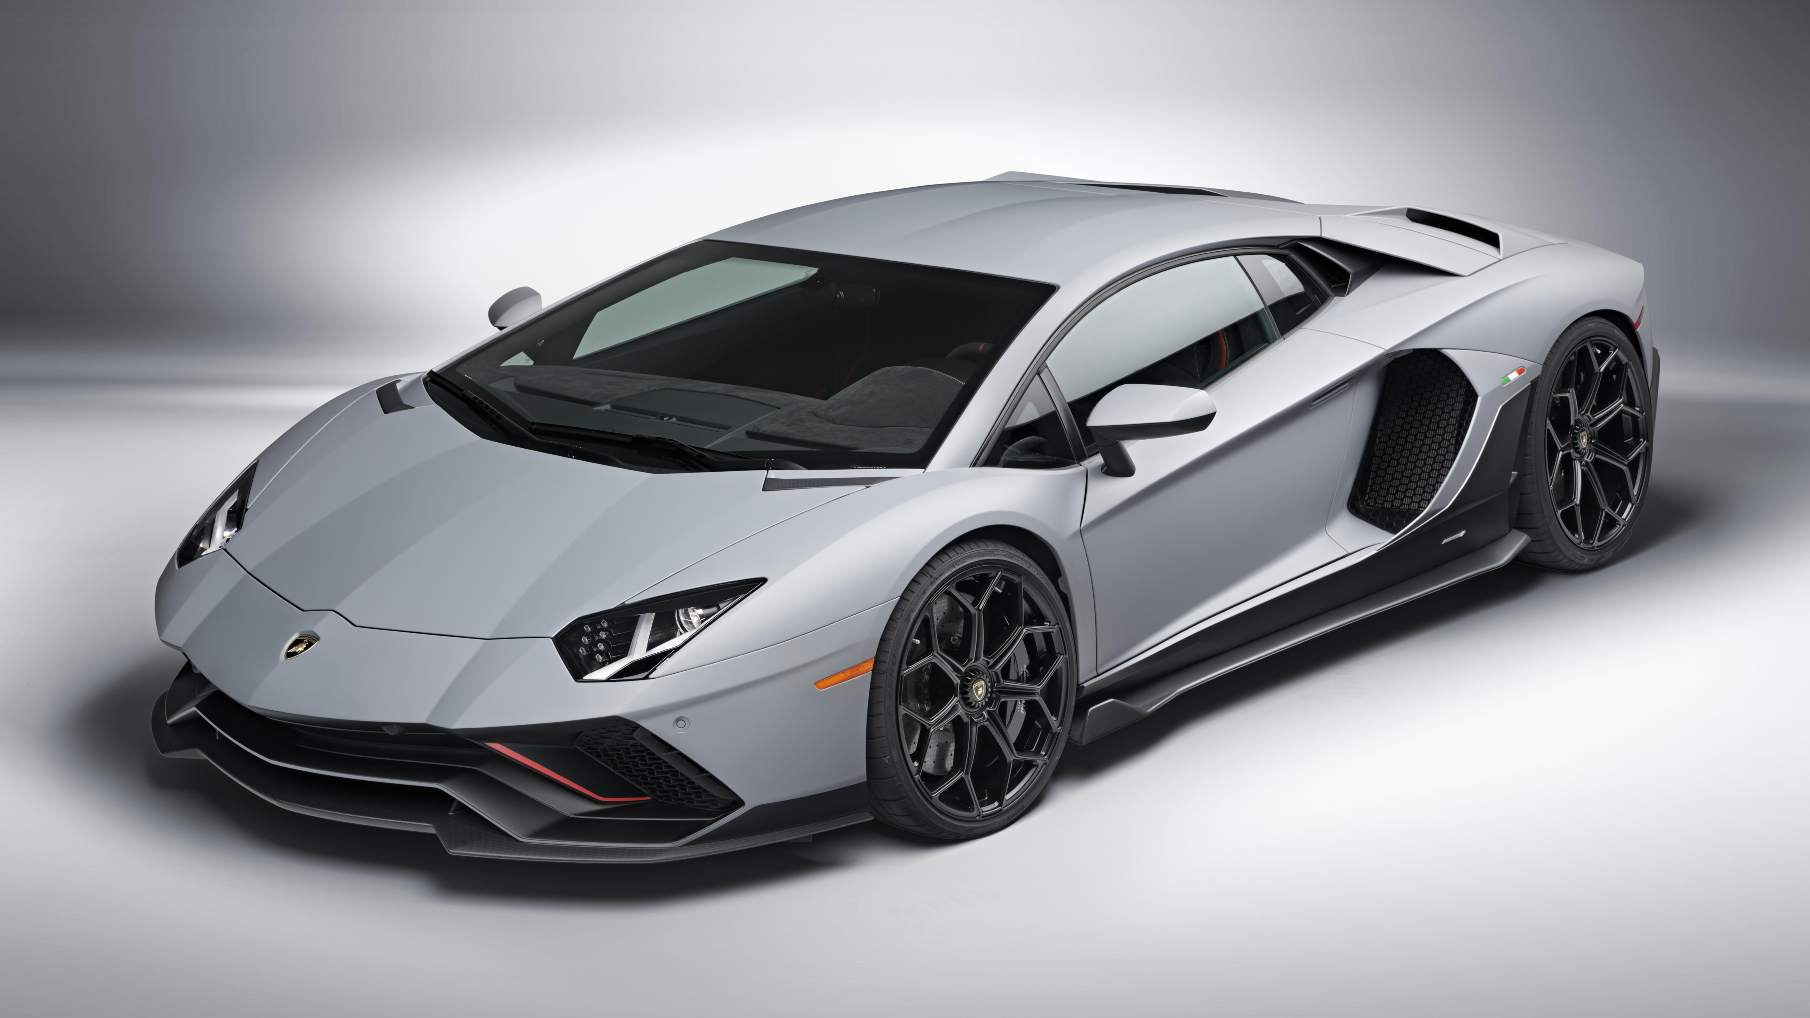 The Ultimae is the most powerful road-going version of the Lamborghini Aventador, and will be launched in India soon. Image: Lamborghini